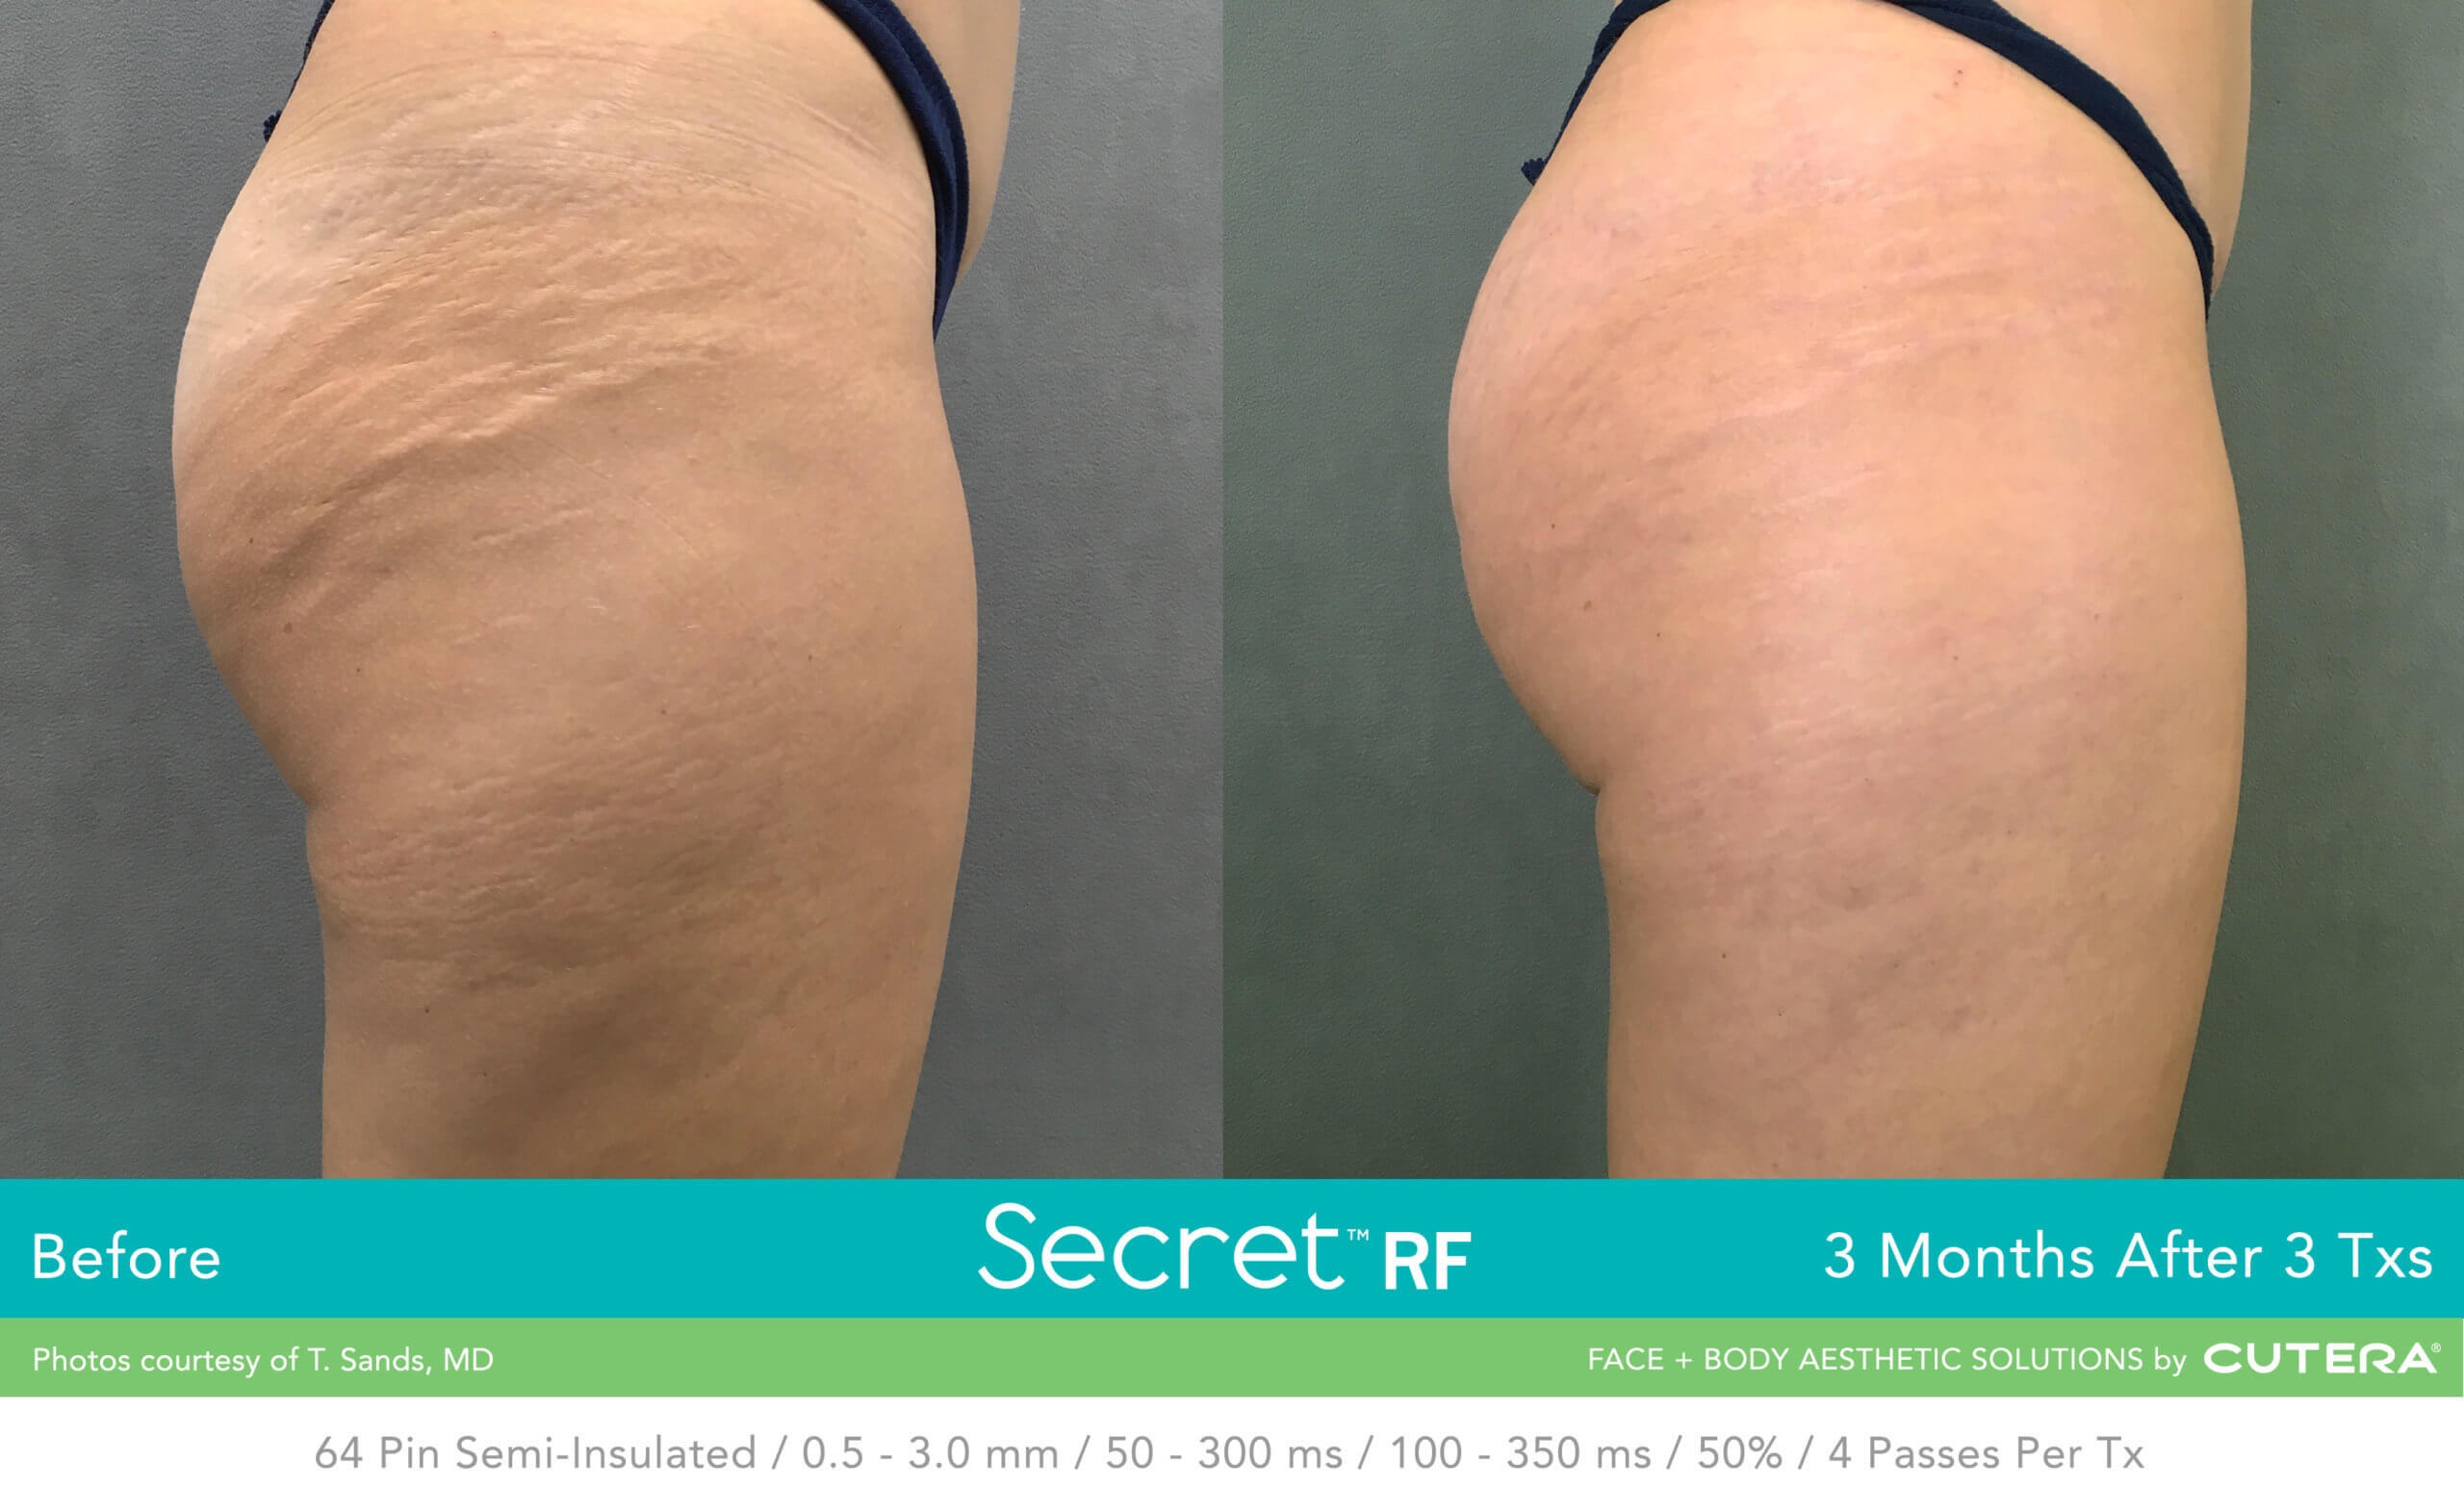 Before and after image of buttocks stretch mark removal after 3 treatment sessions with Secret RF - Miami Skin Spa